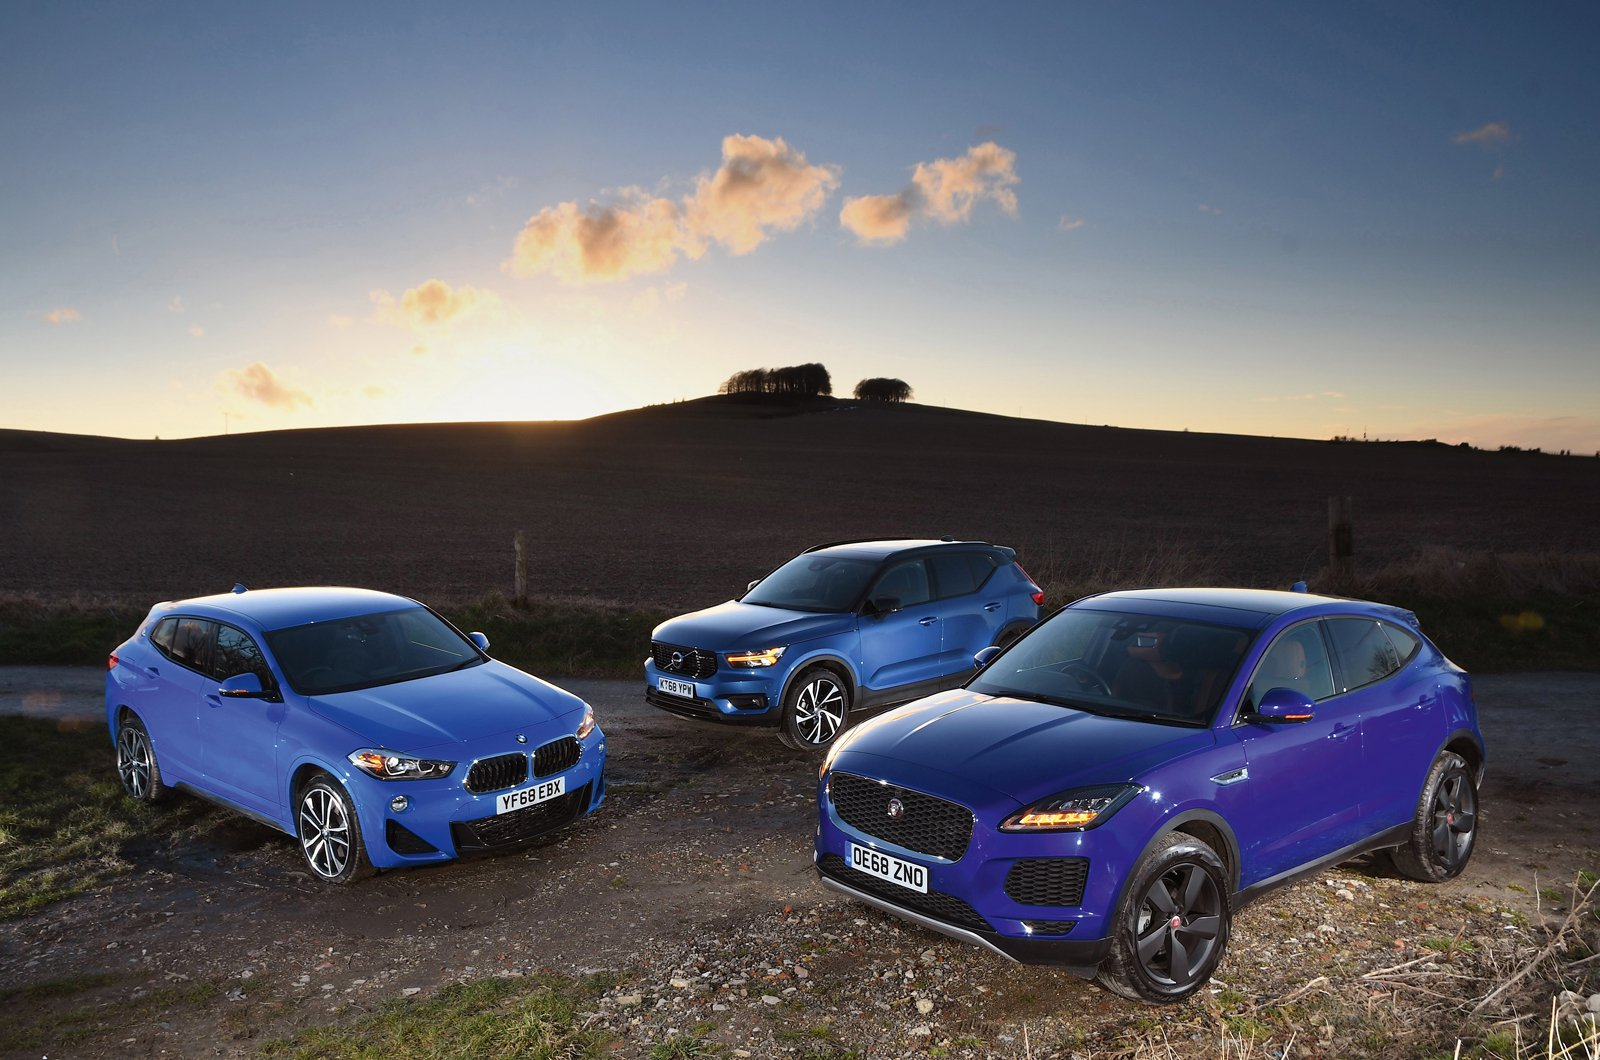 BMW X2, Jaguar E-Pace and Volvo XC40